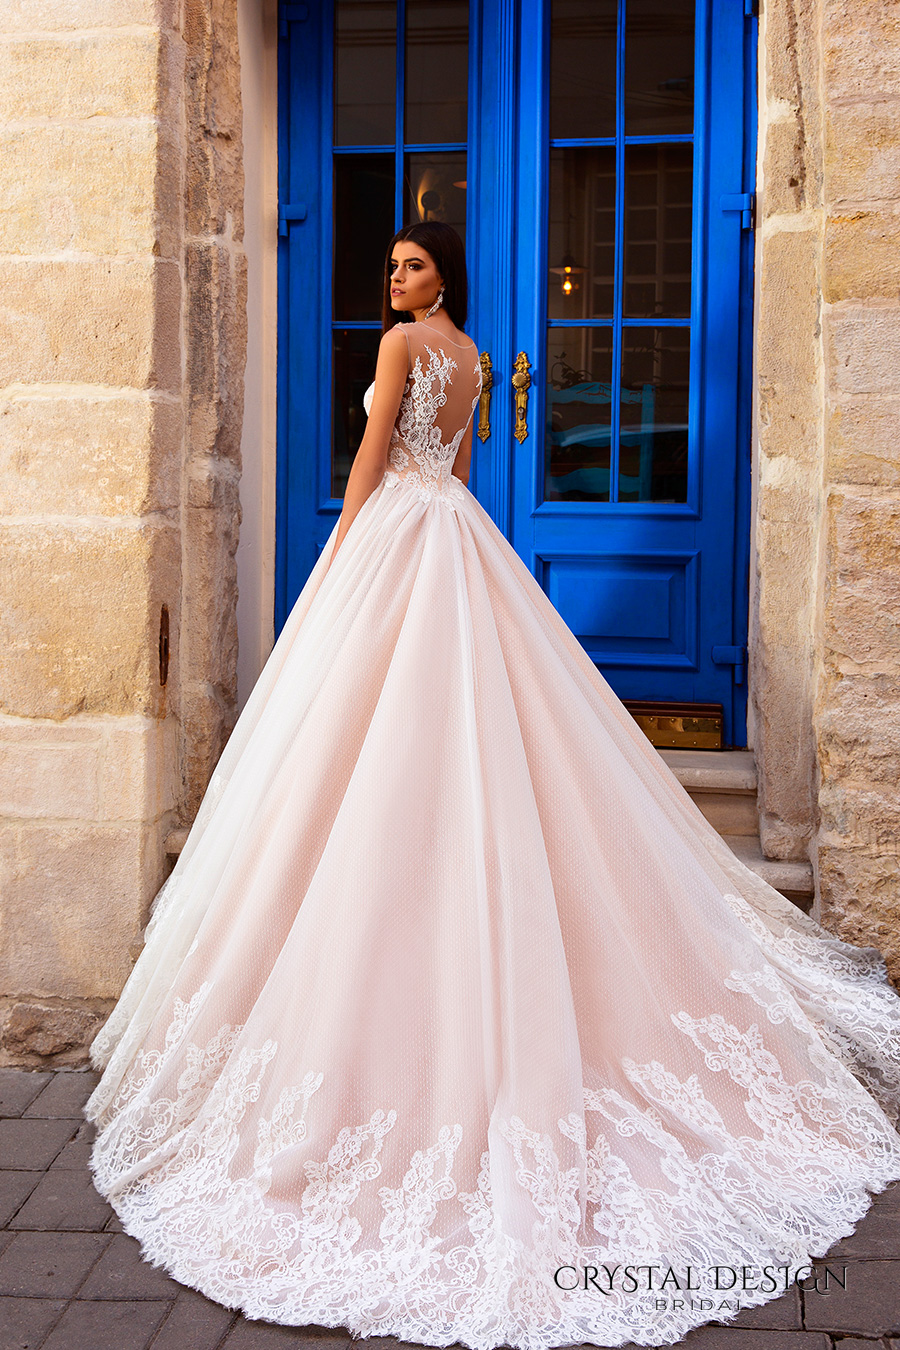 crystal design bridal 2016 sleeveless illusion round neckline v neck lace embellished bodice gorgeous princess ball gown wedding dress chapel train (avrora) bv